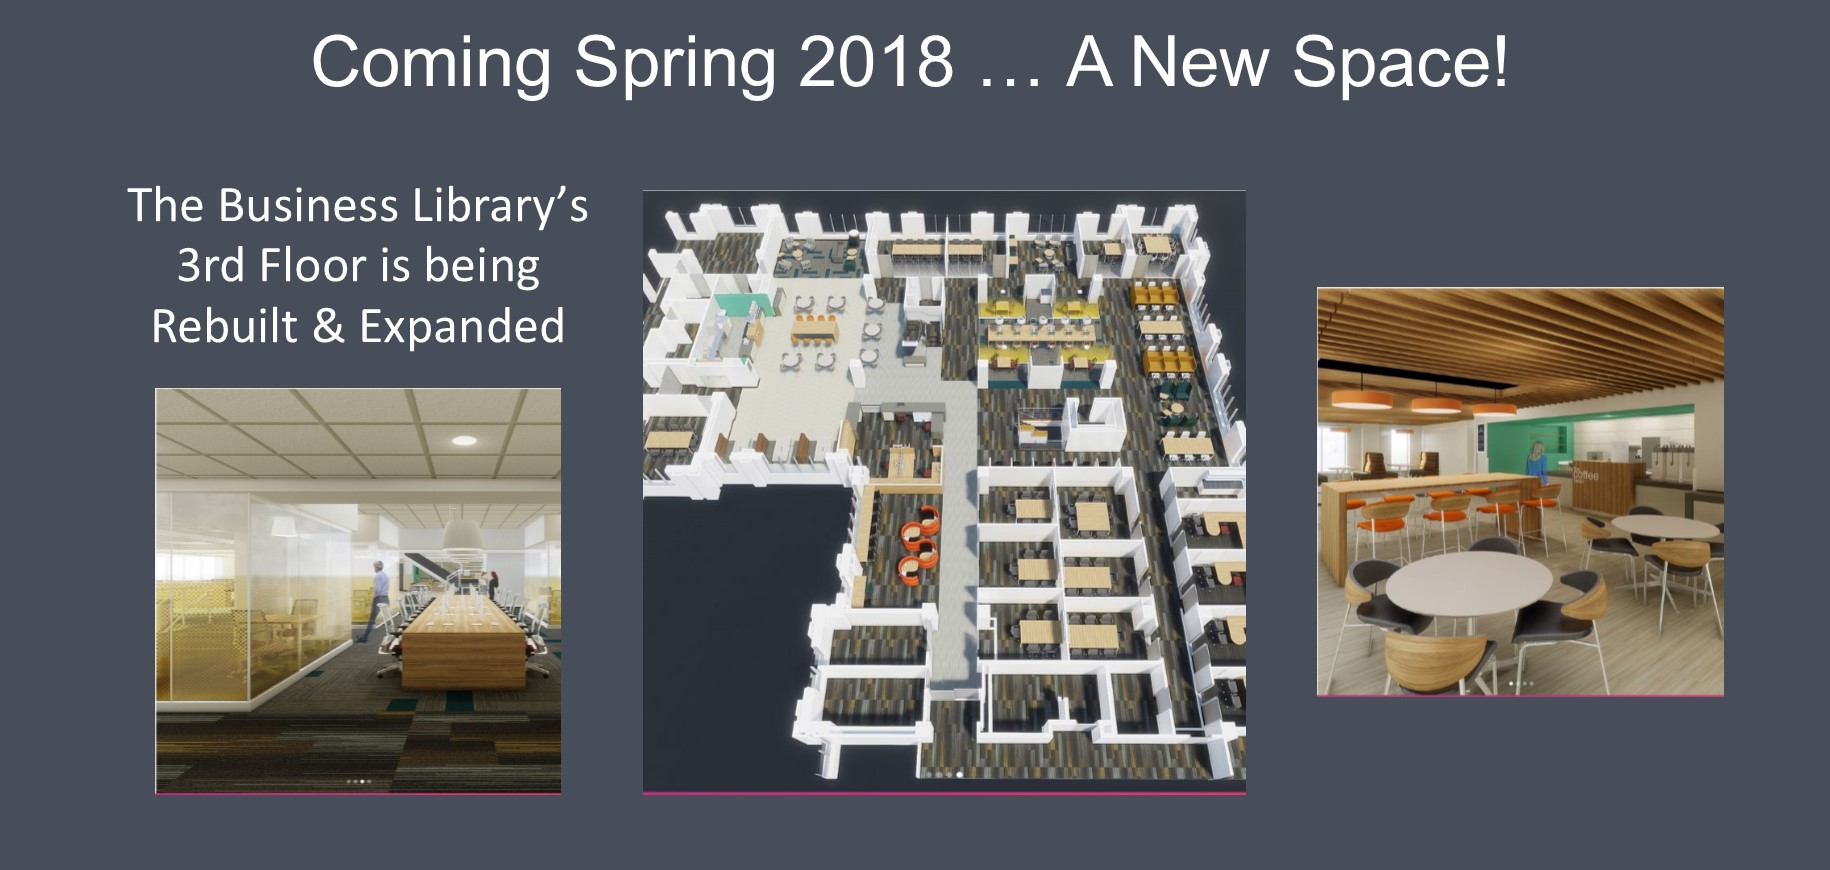 The Library's third floor in under renovation and will re-open in spring of next year